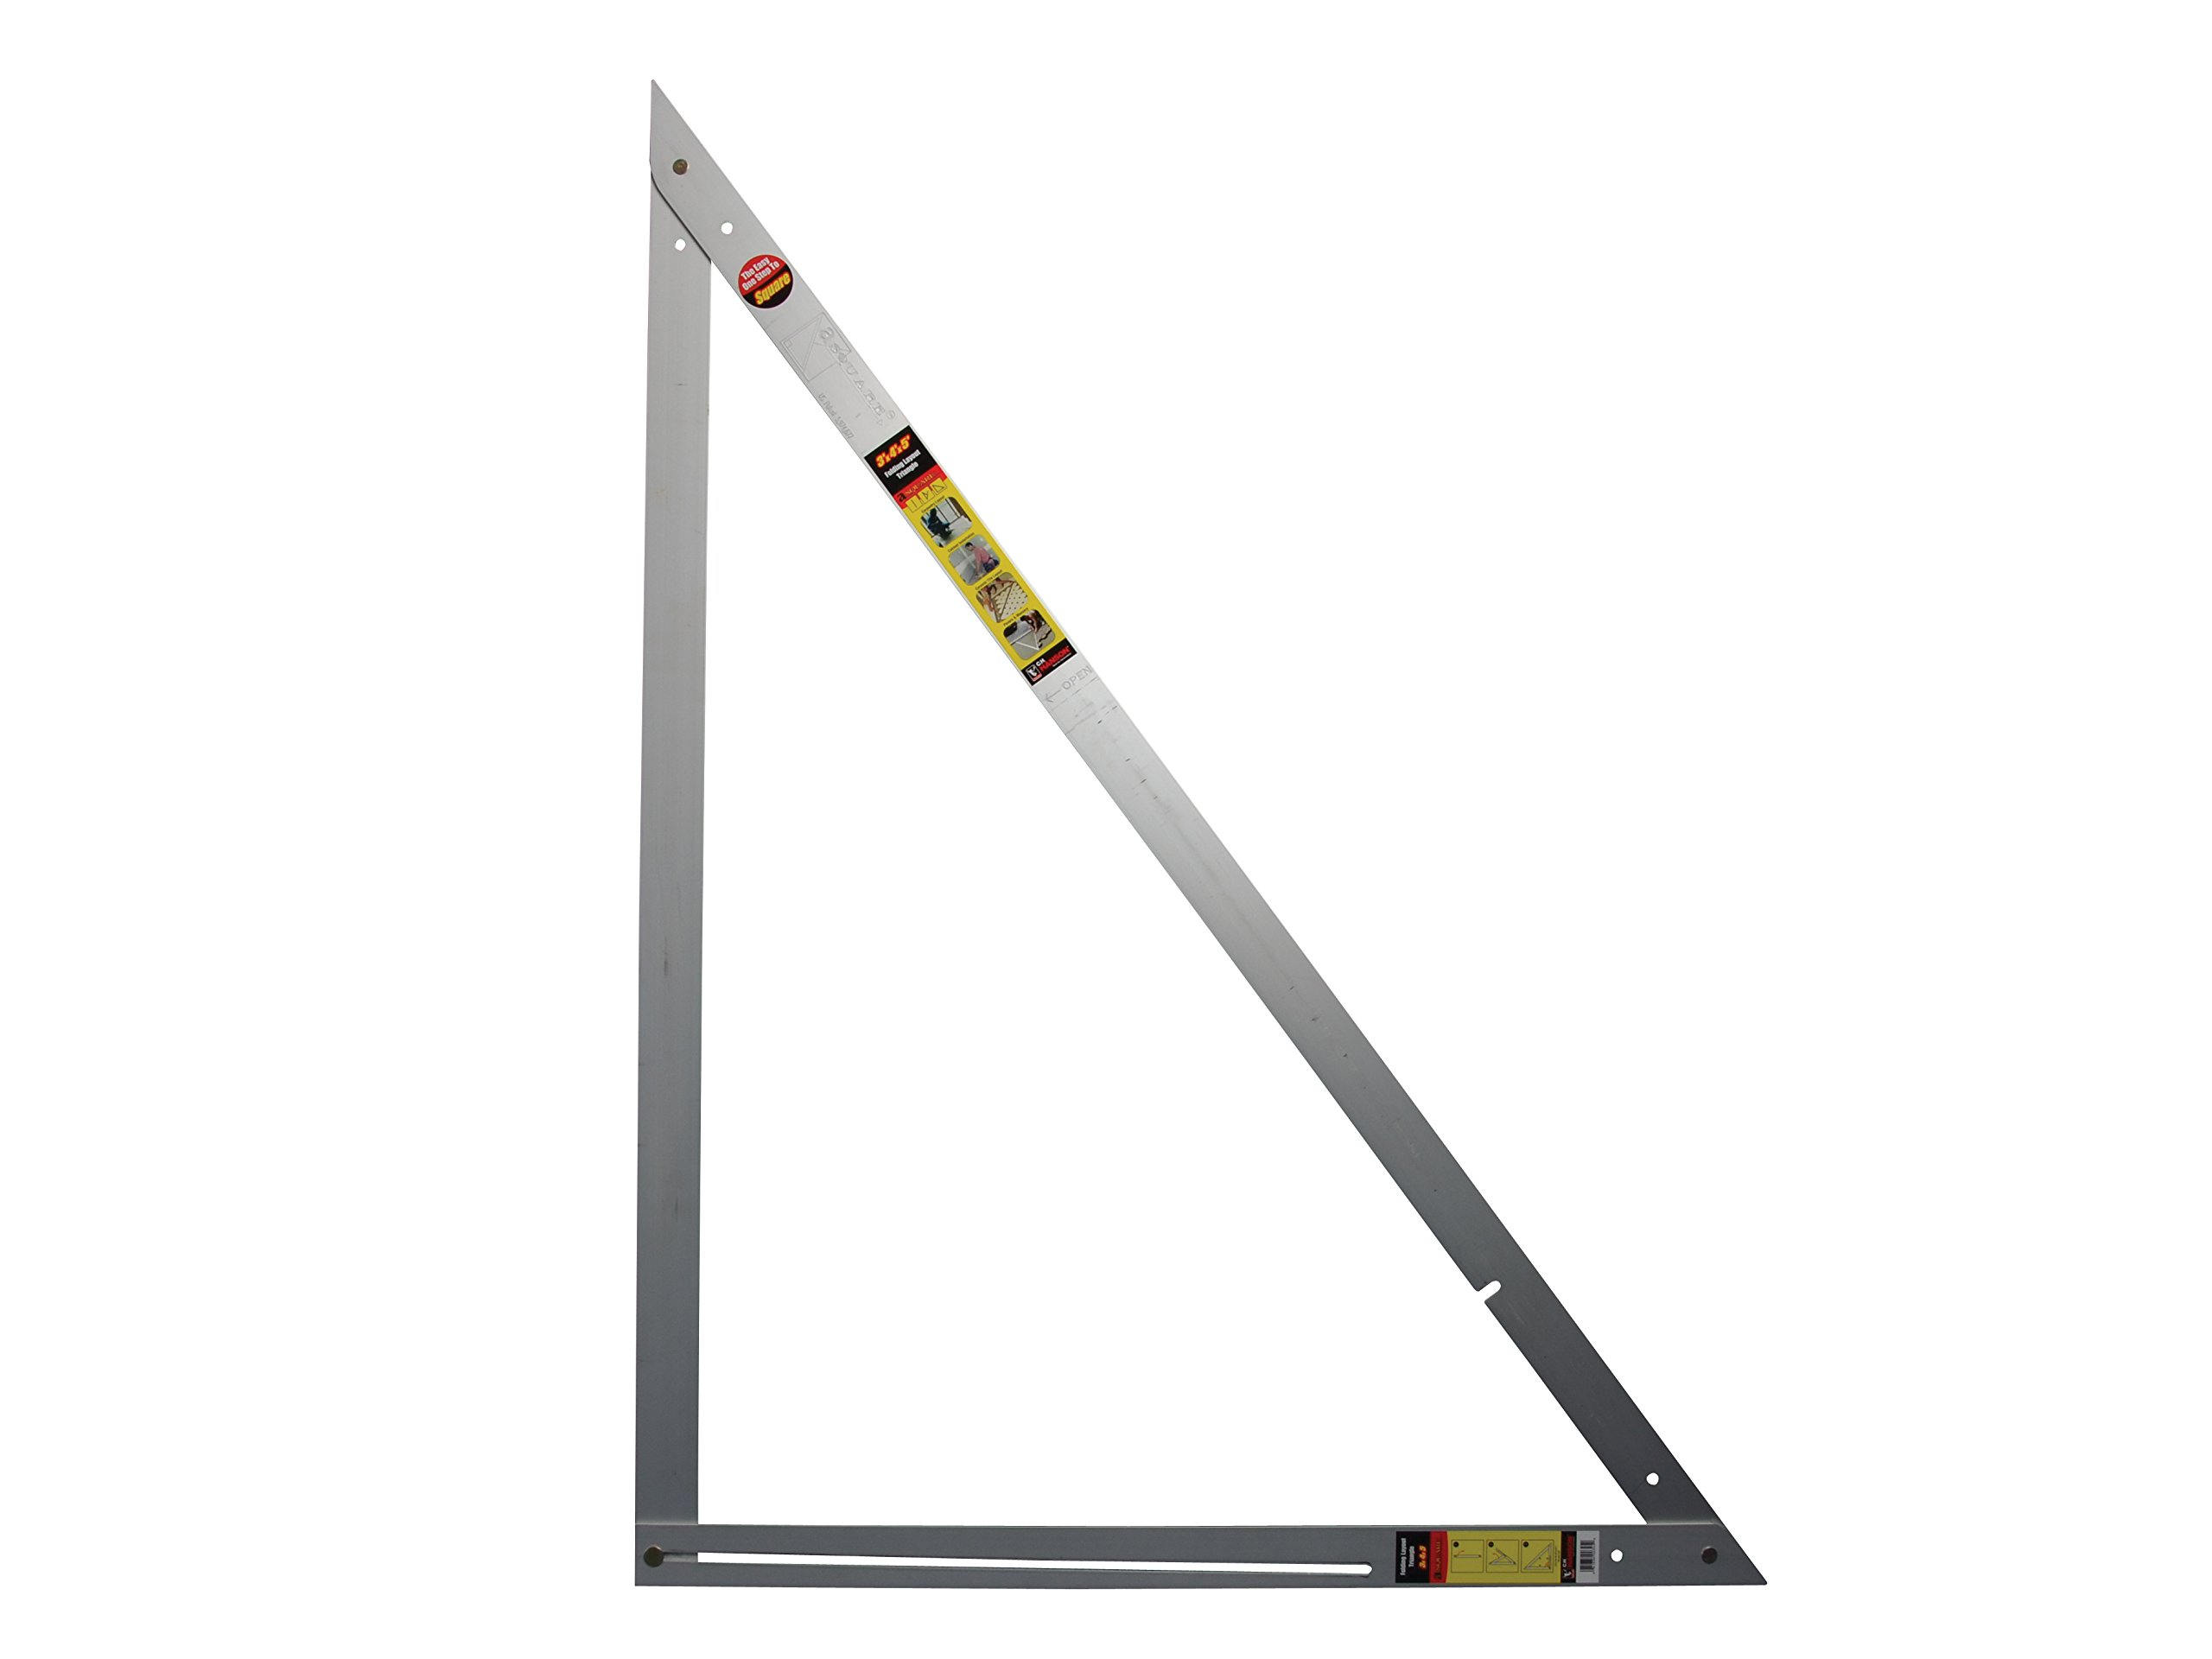 CH Hanson 3 ft. x 4 ft. x 5 ft. 90 degree Aluminum Folding Layout Asquare